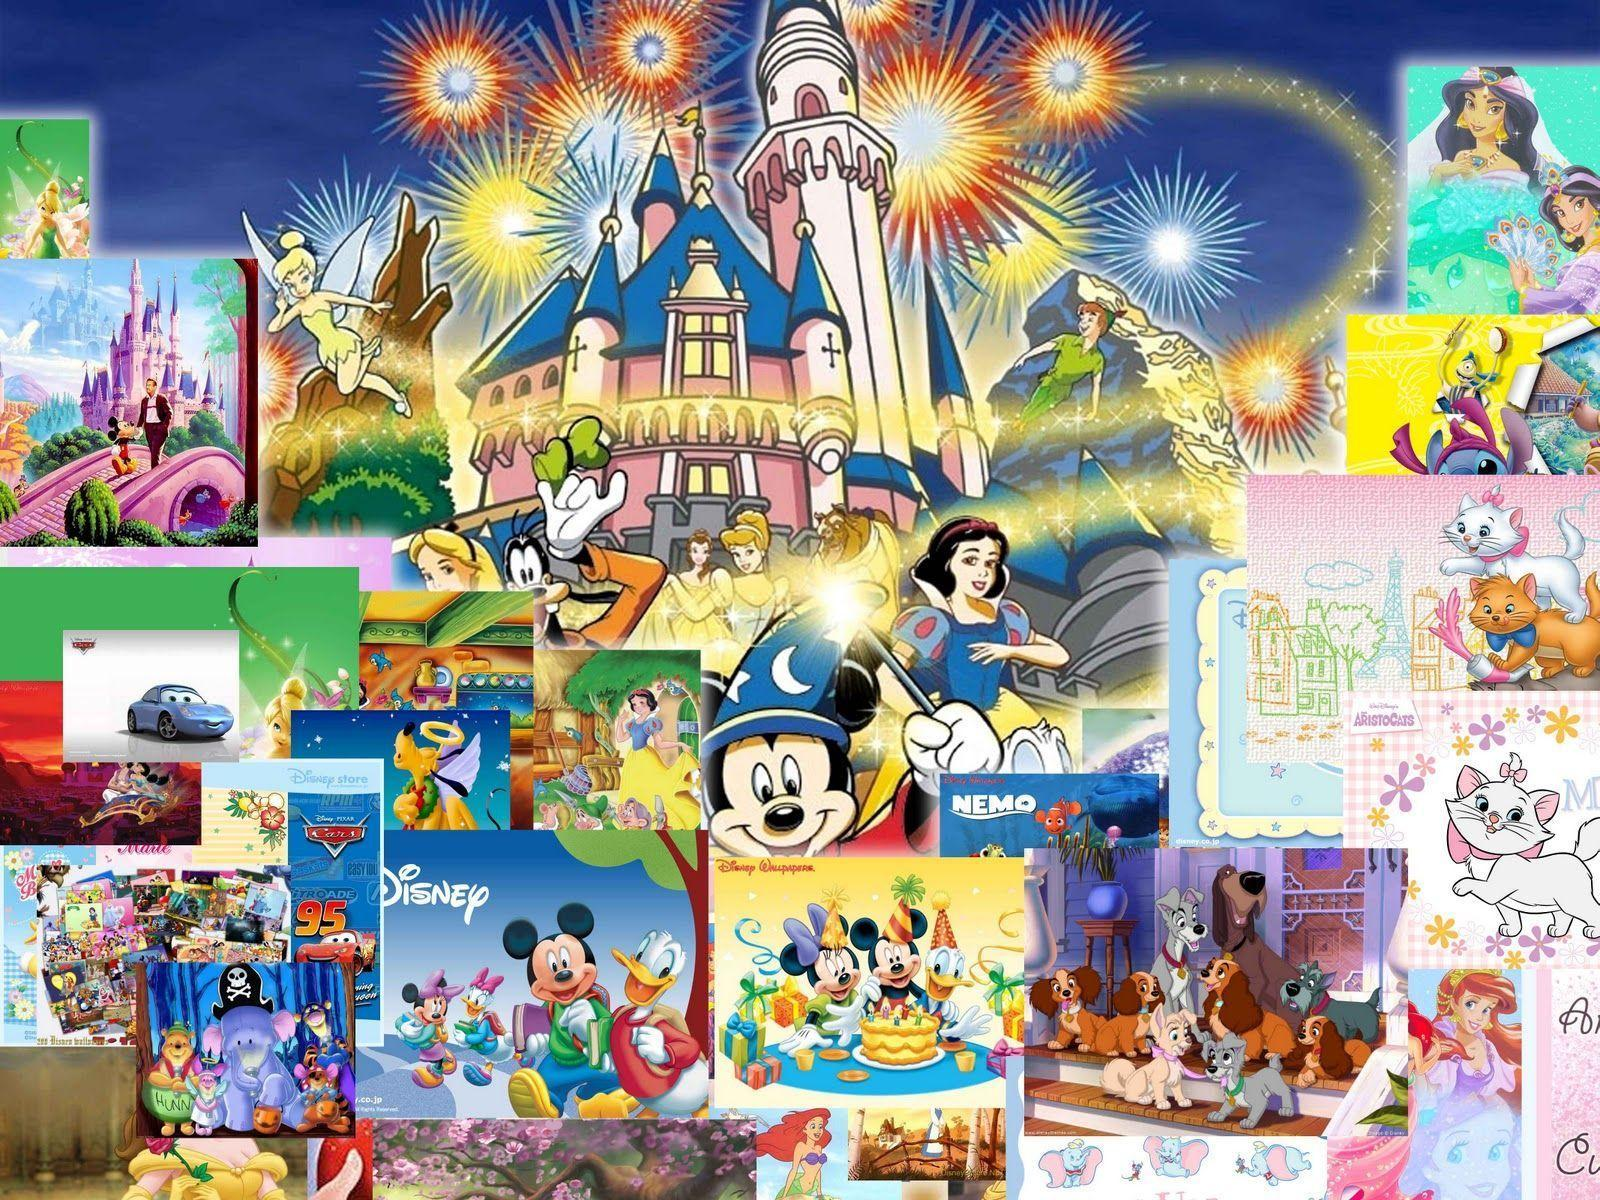 Free disney backgrounds wallpaper cave download free disney wallpaper 1600x1200 hd wallpapers 599654 voltagebd Choice Image